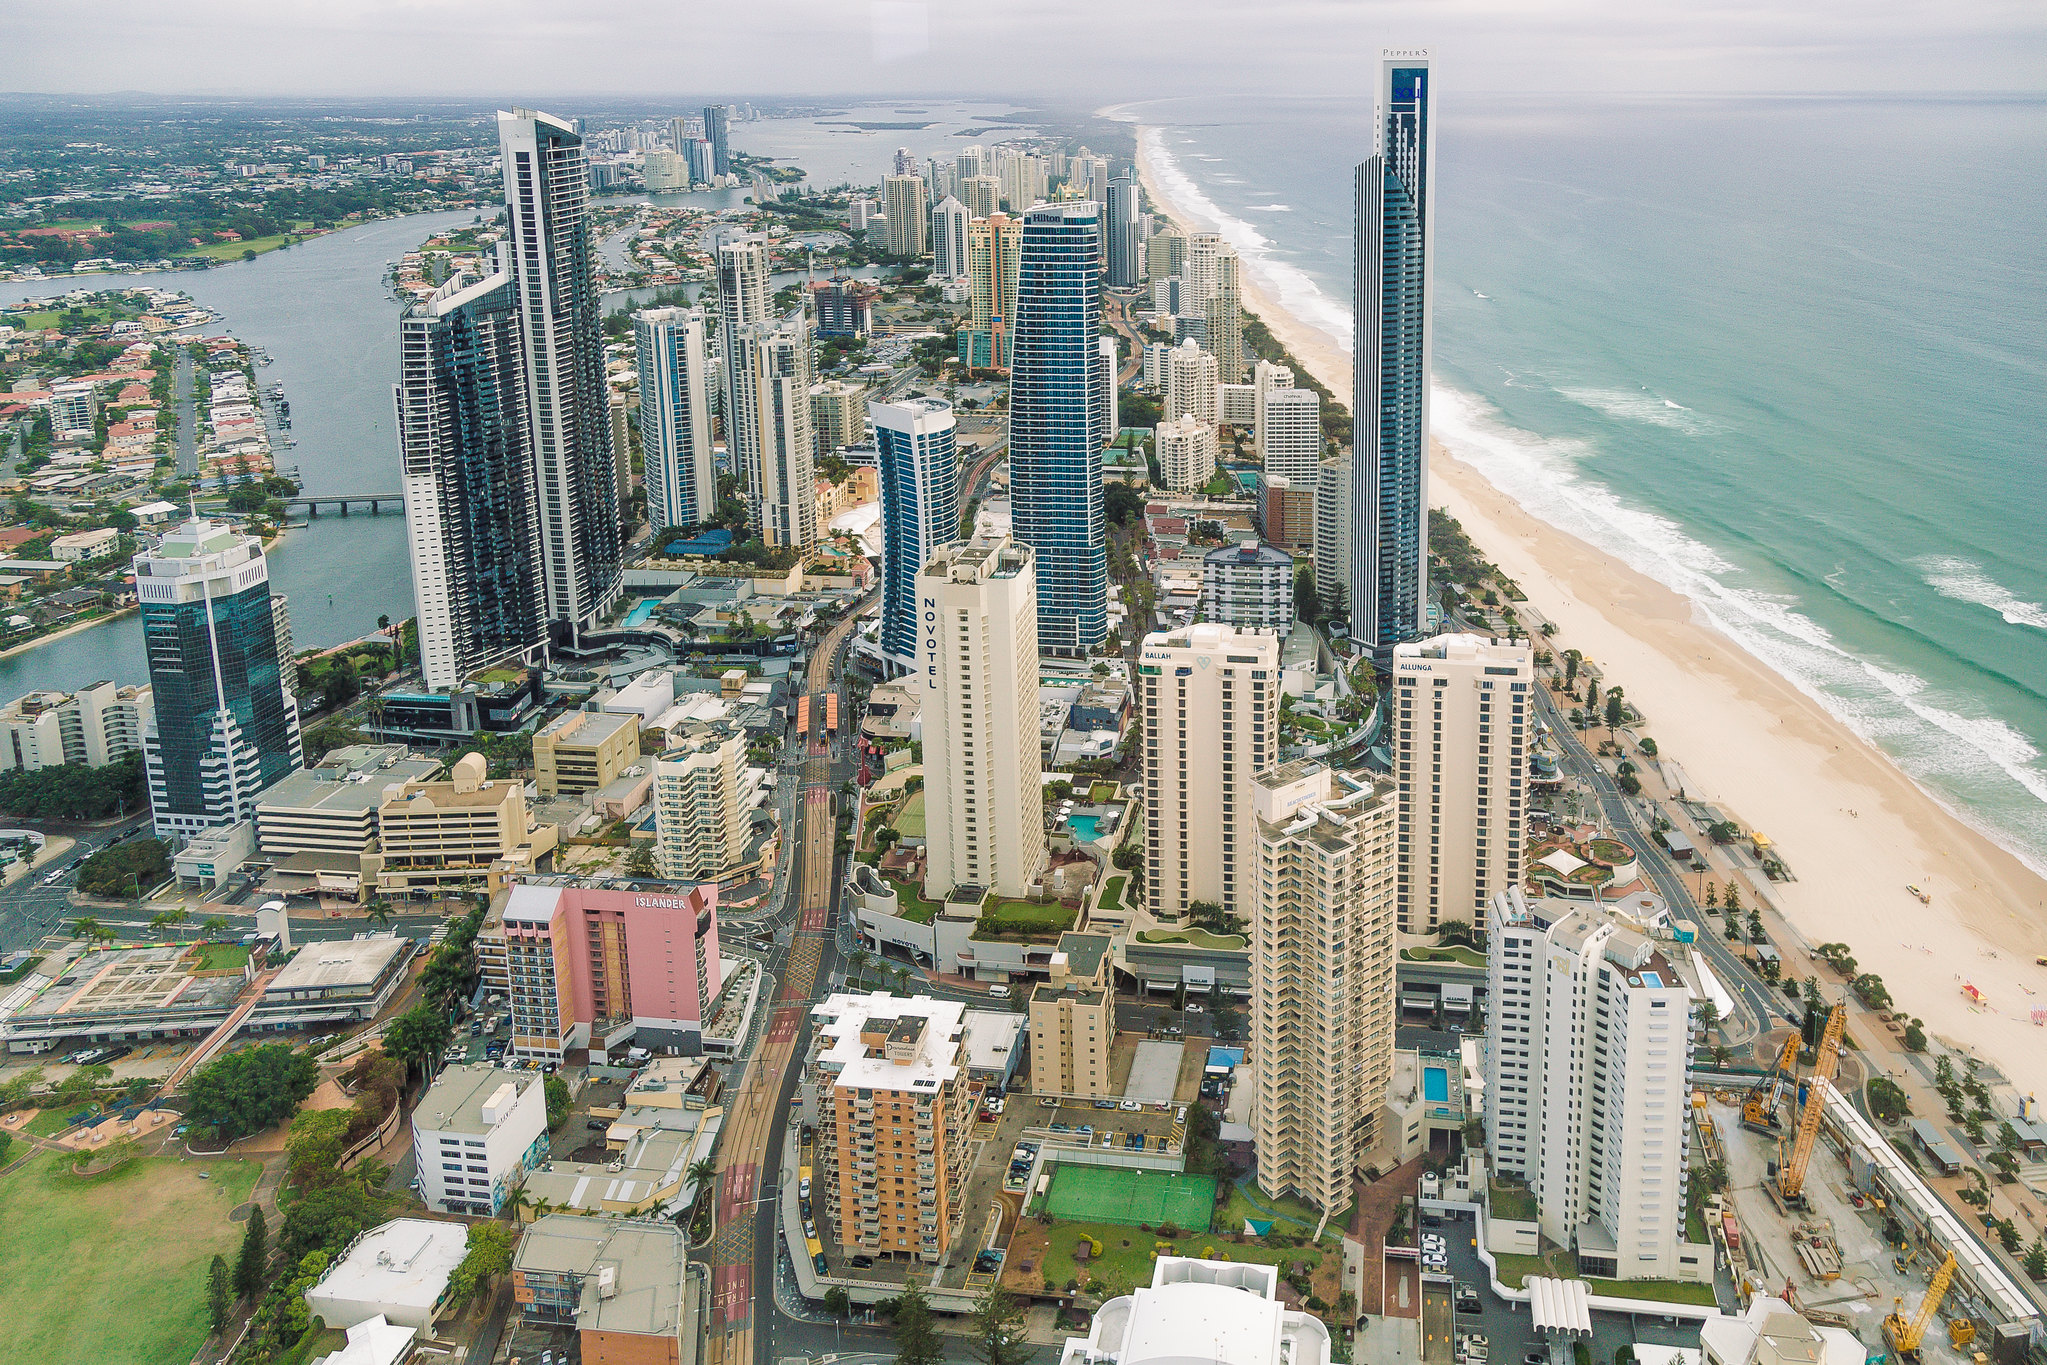 6 Best Things To Do in Surfers Paradise, Australia [with Suggested Tours]